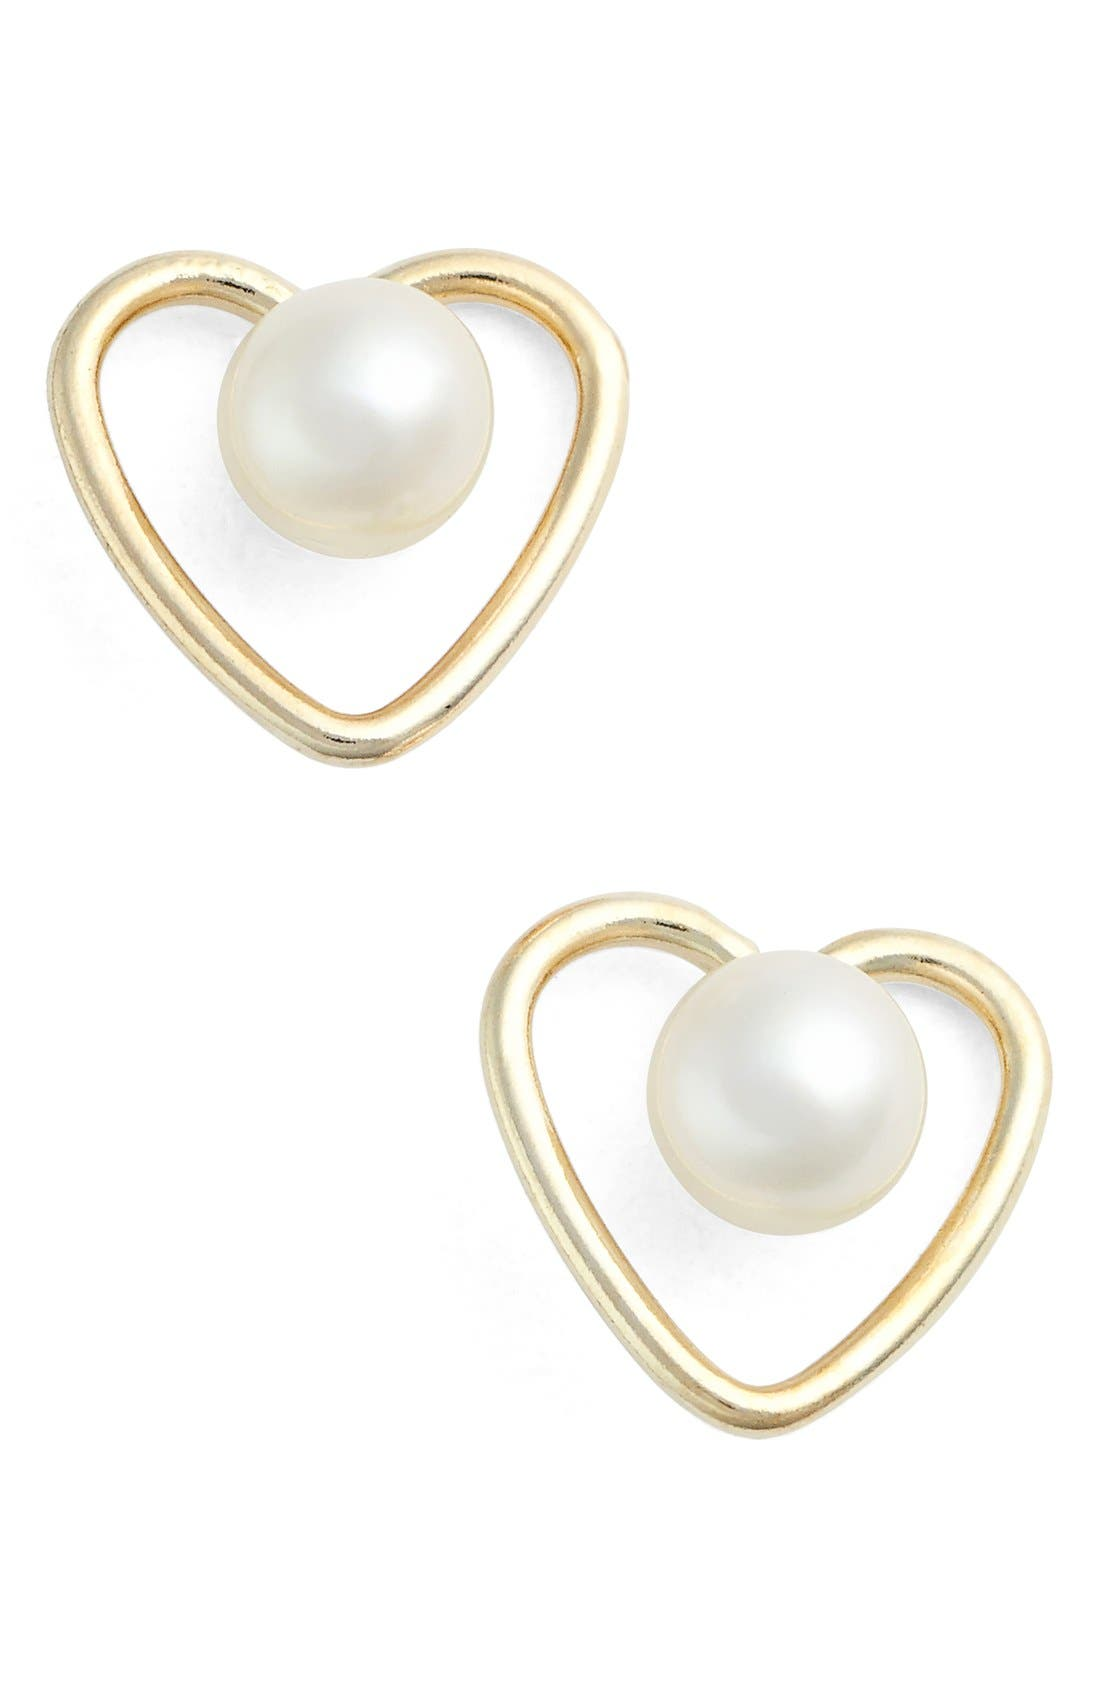 Cultured Pearl Heart Earrings,                             Main thumbnail 1, color,                             YELLOW GOLD